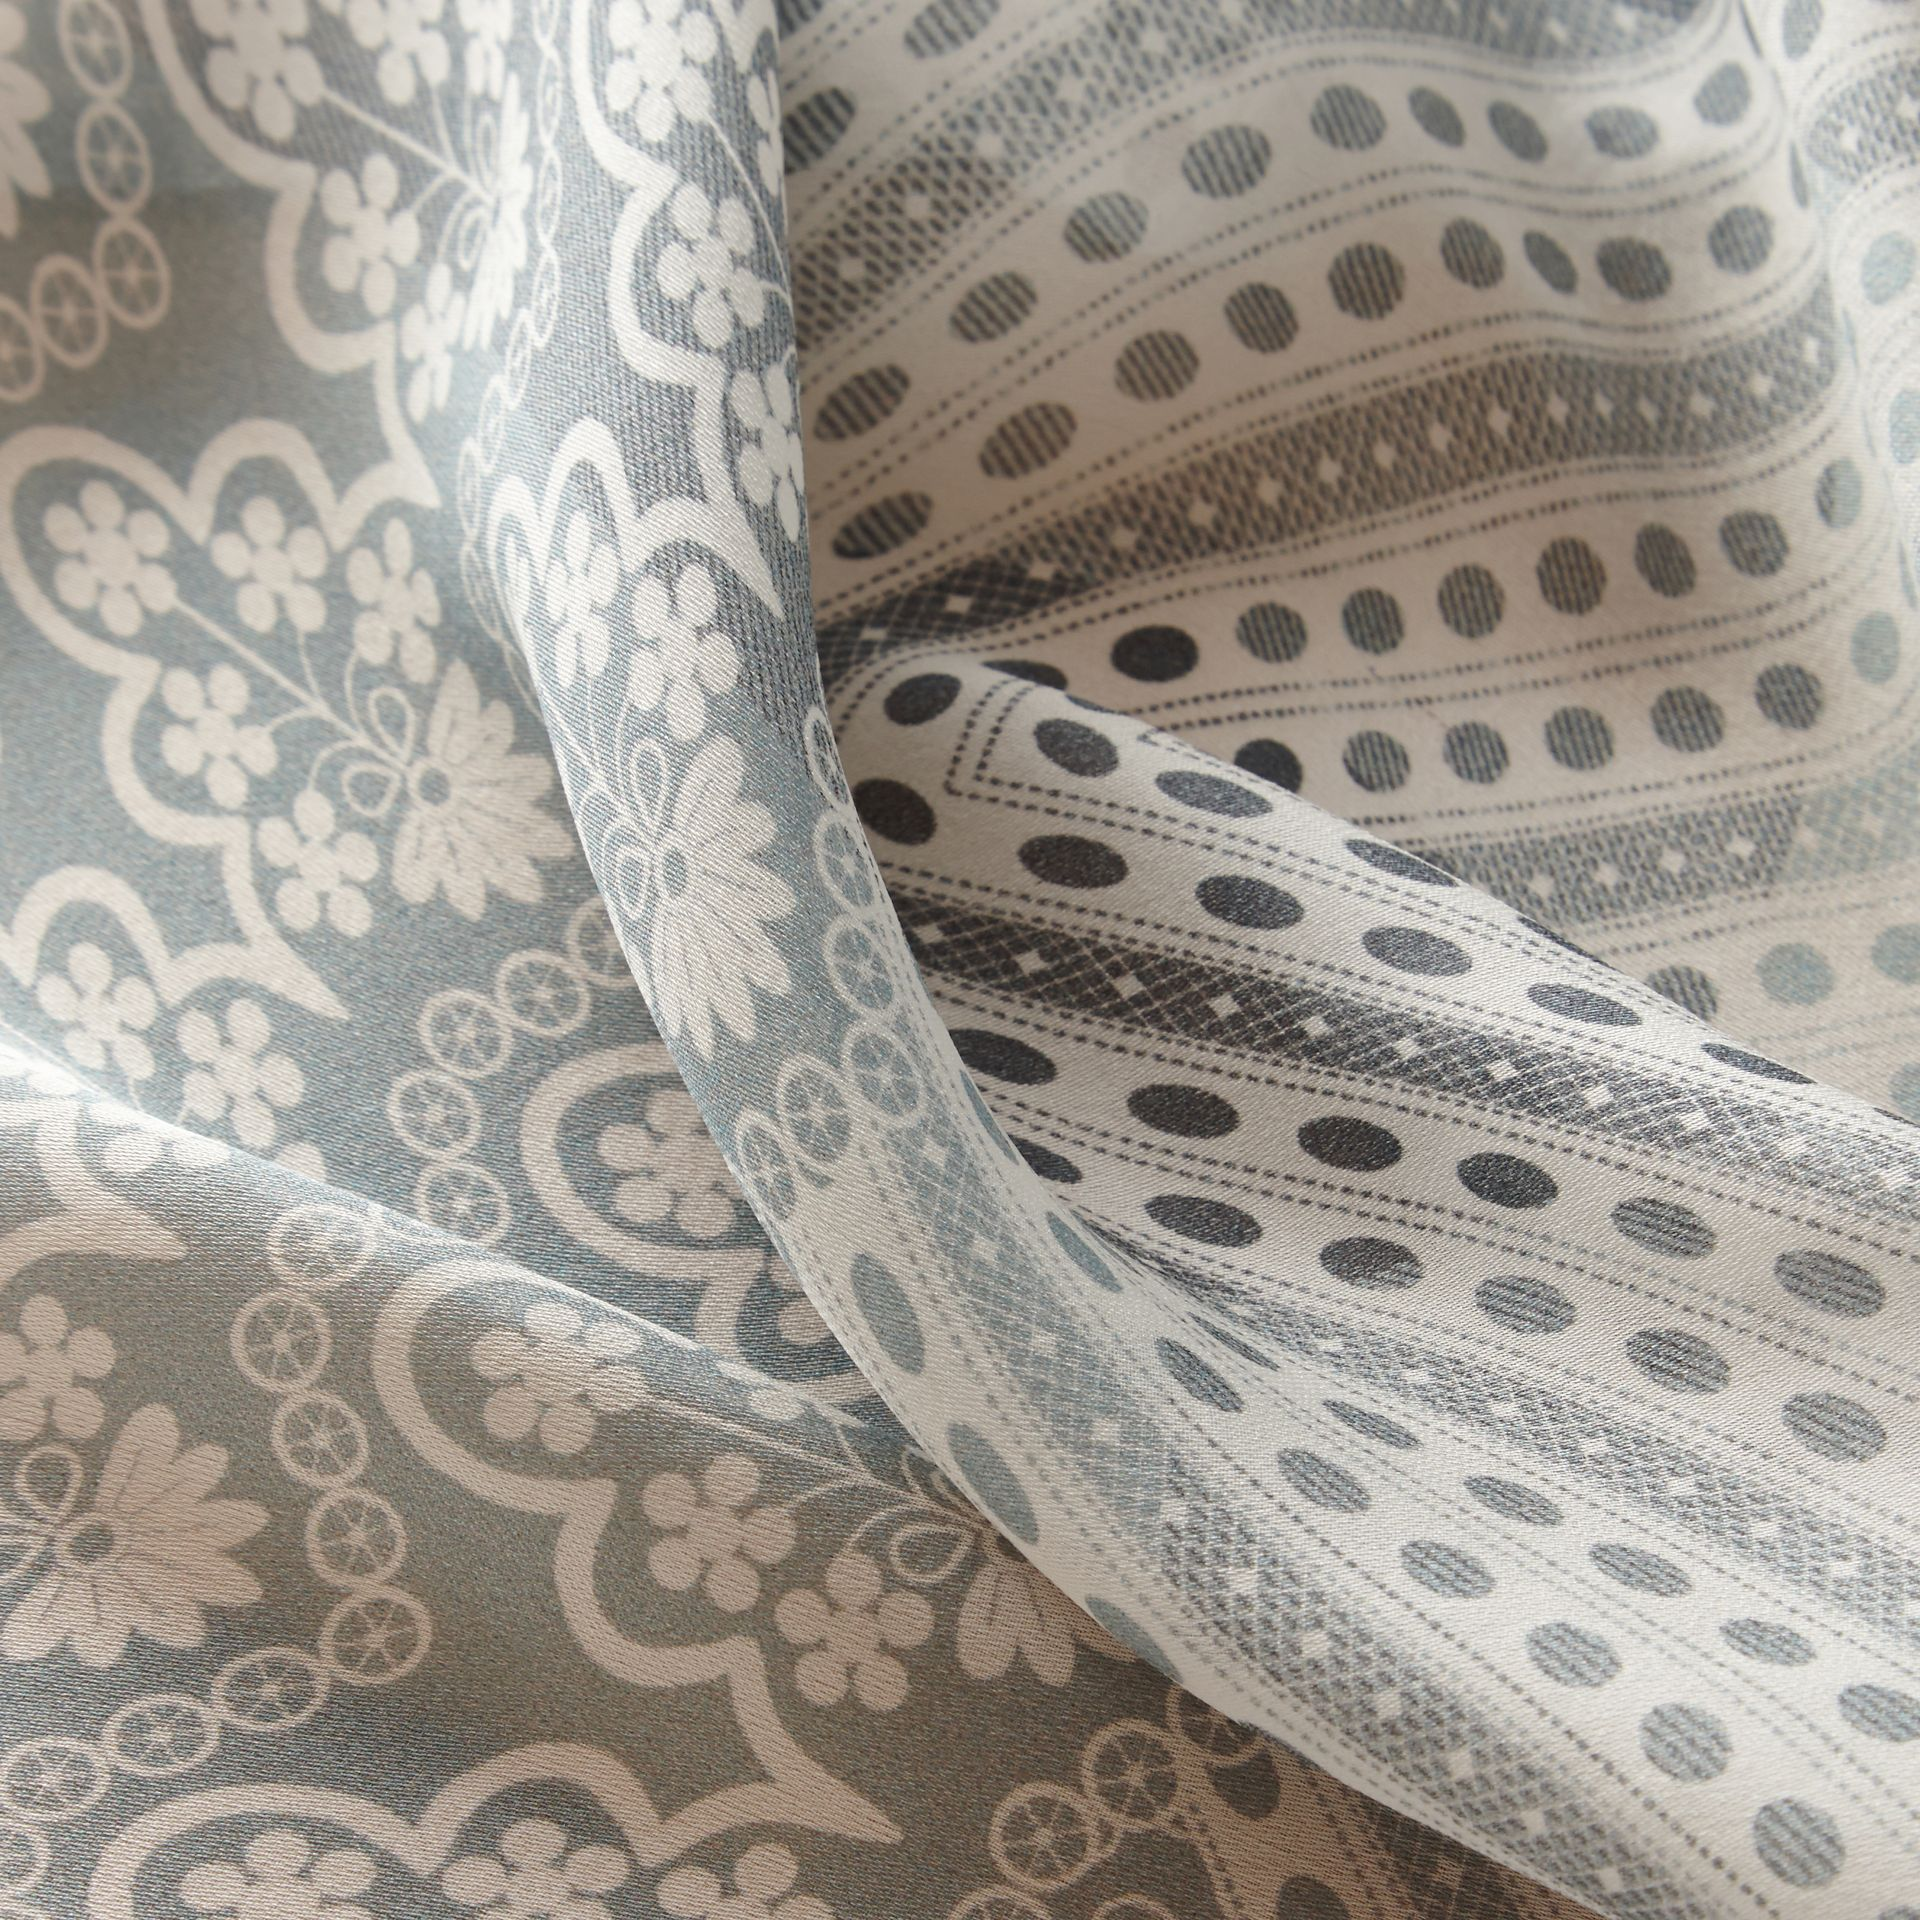 Floral Lace and Check Print Silk Scarf in Slate Blue - Women | Burberry - gallery image 2